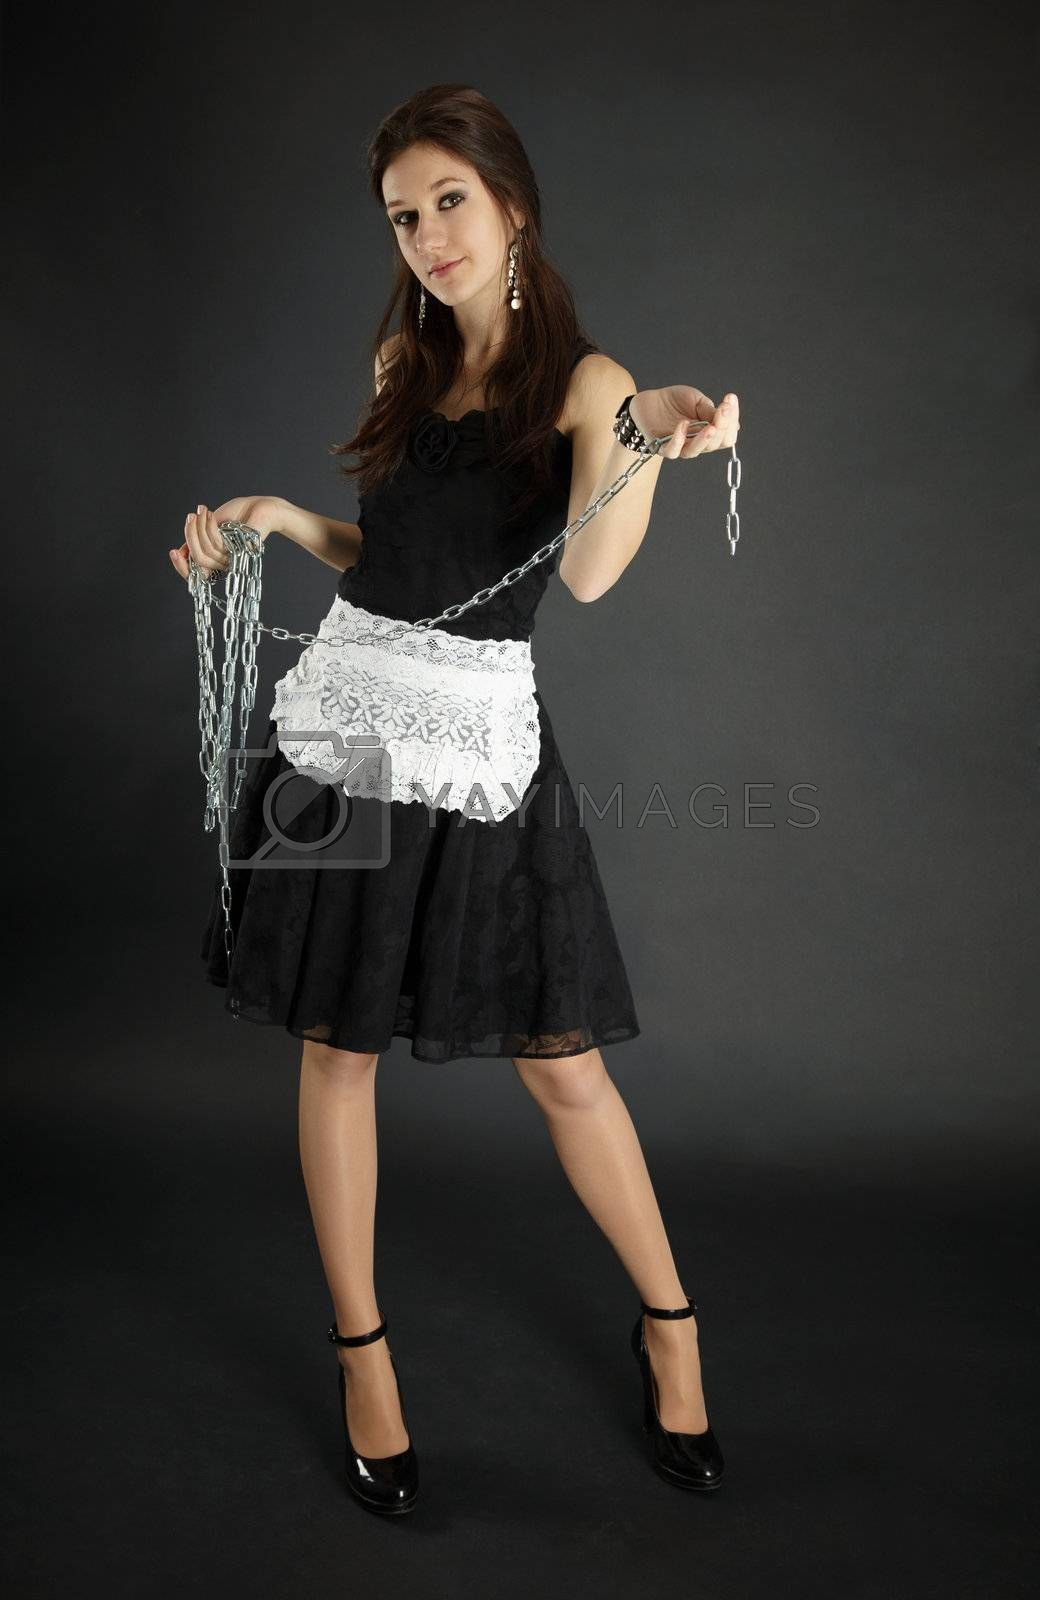 Royalty free image of Woman in maid costume with chain by pzaxe